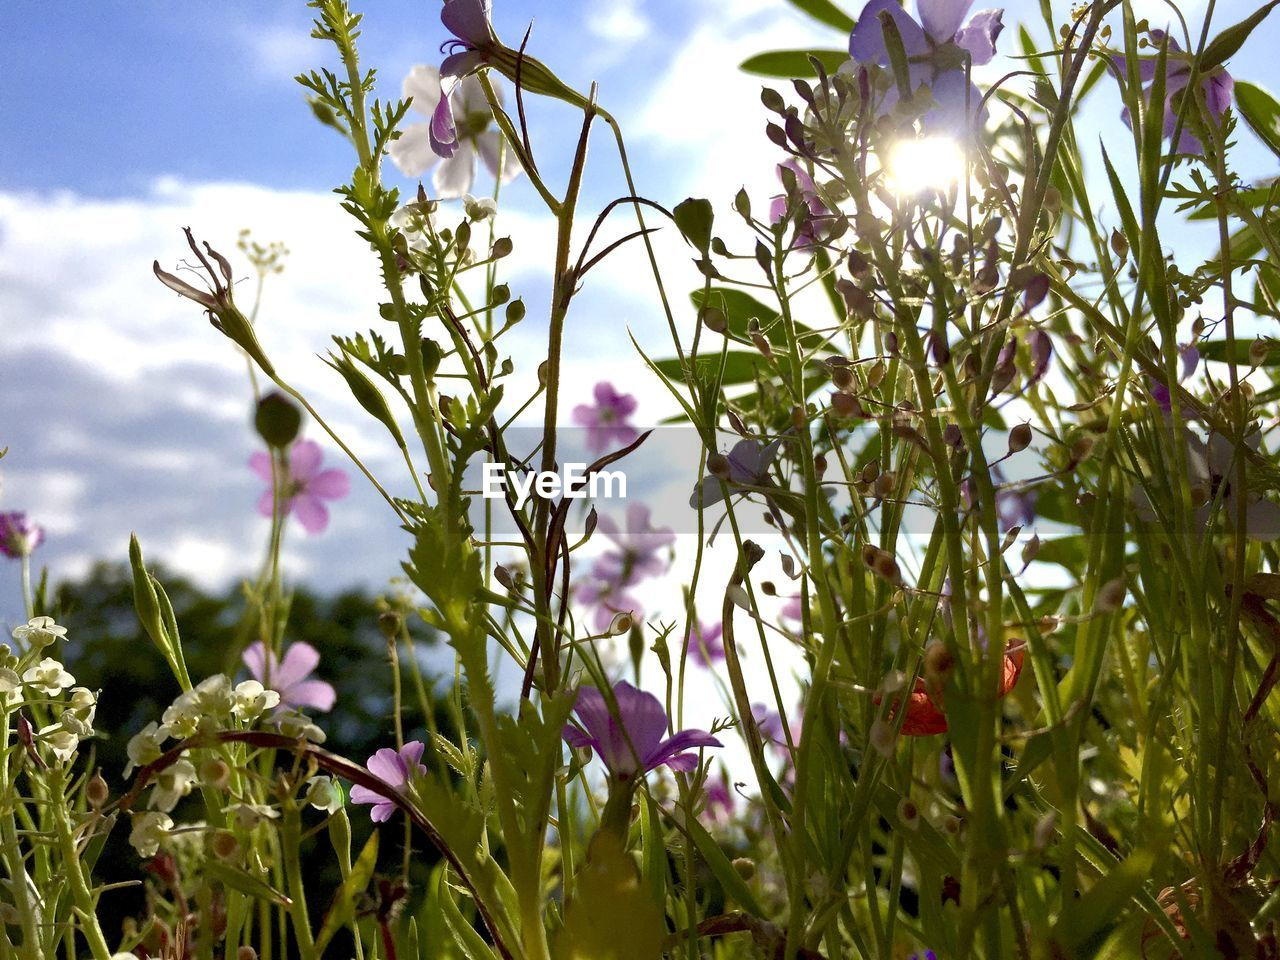 flower, growth, nature, beauty in nature, freshness, fragility, petal, plant, outdoors, no people, day, purple, sunlight, close-up, blooming, sky, tree, flower head